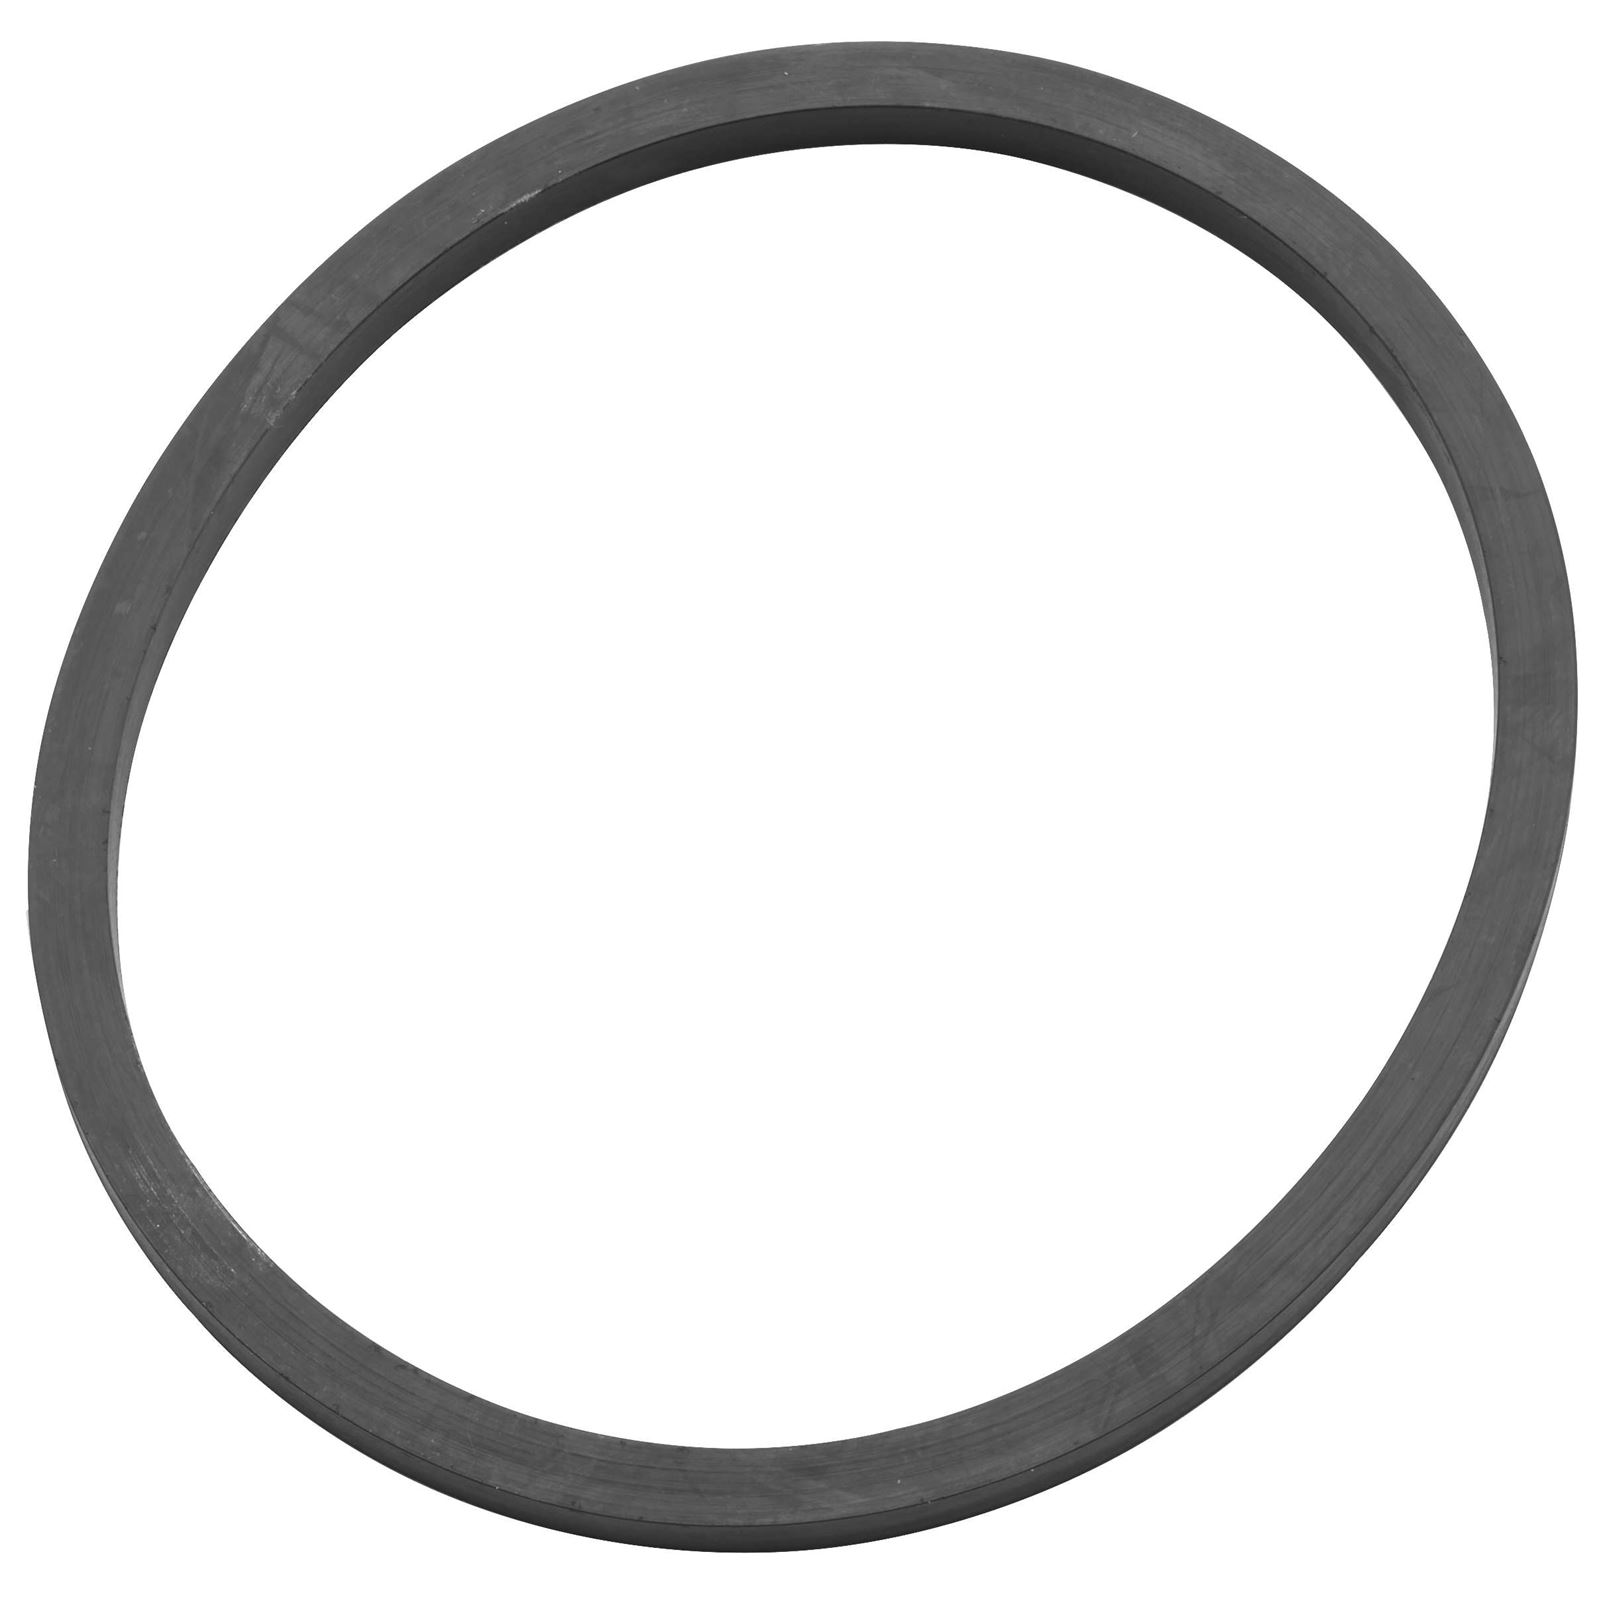 PCRacing Flo Stainless Steel Oil Filter Seal Ring